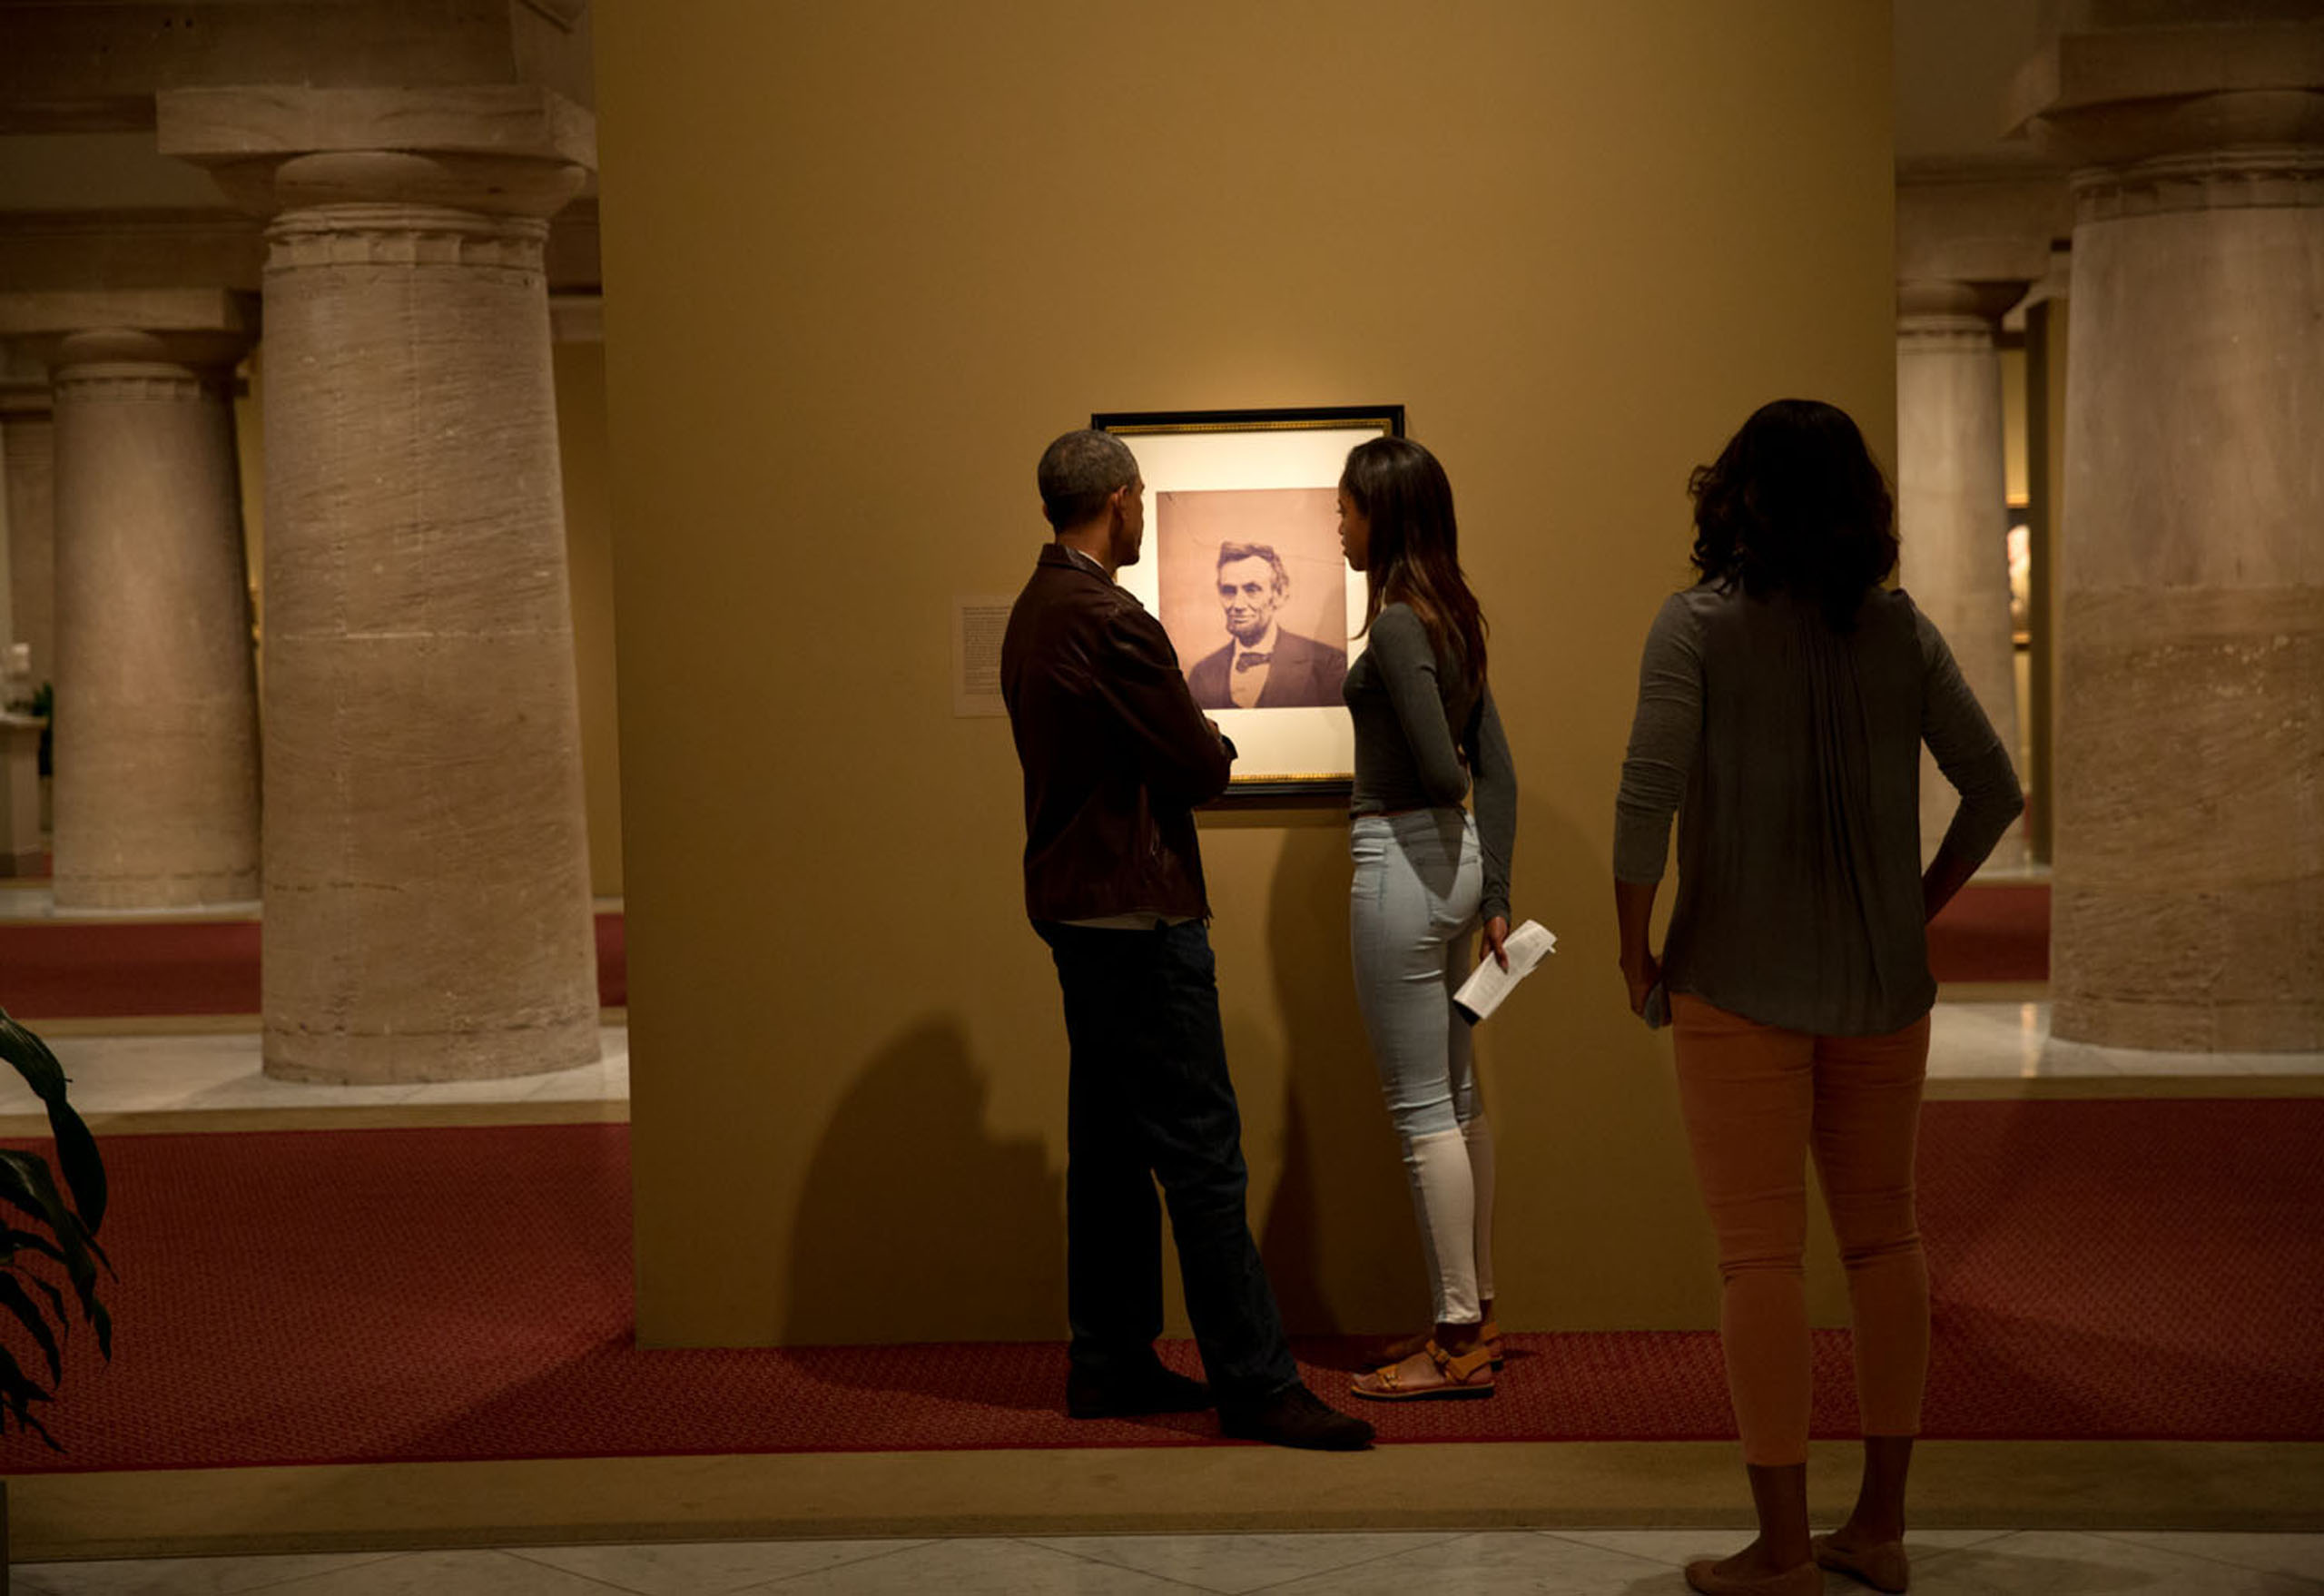 The President, First Lady, and daughter Malia view a portrait of Abraham Lincoln while visiting the National Portrait Gallery and Smithsonian American Art Museum in Washington, D.C.,  Sept. 14, 2014.